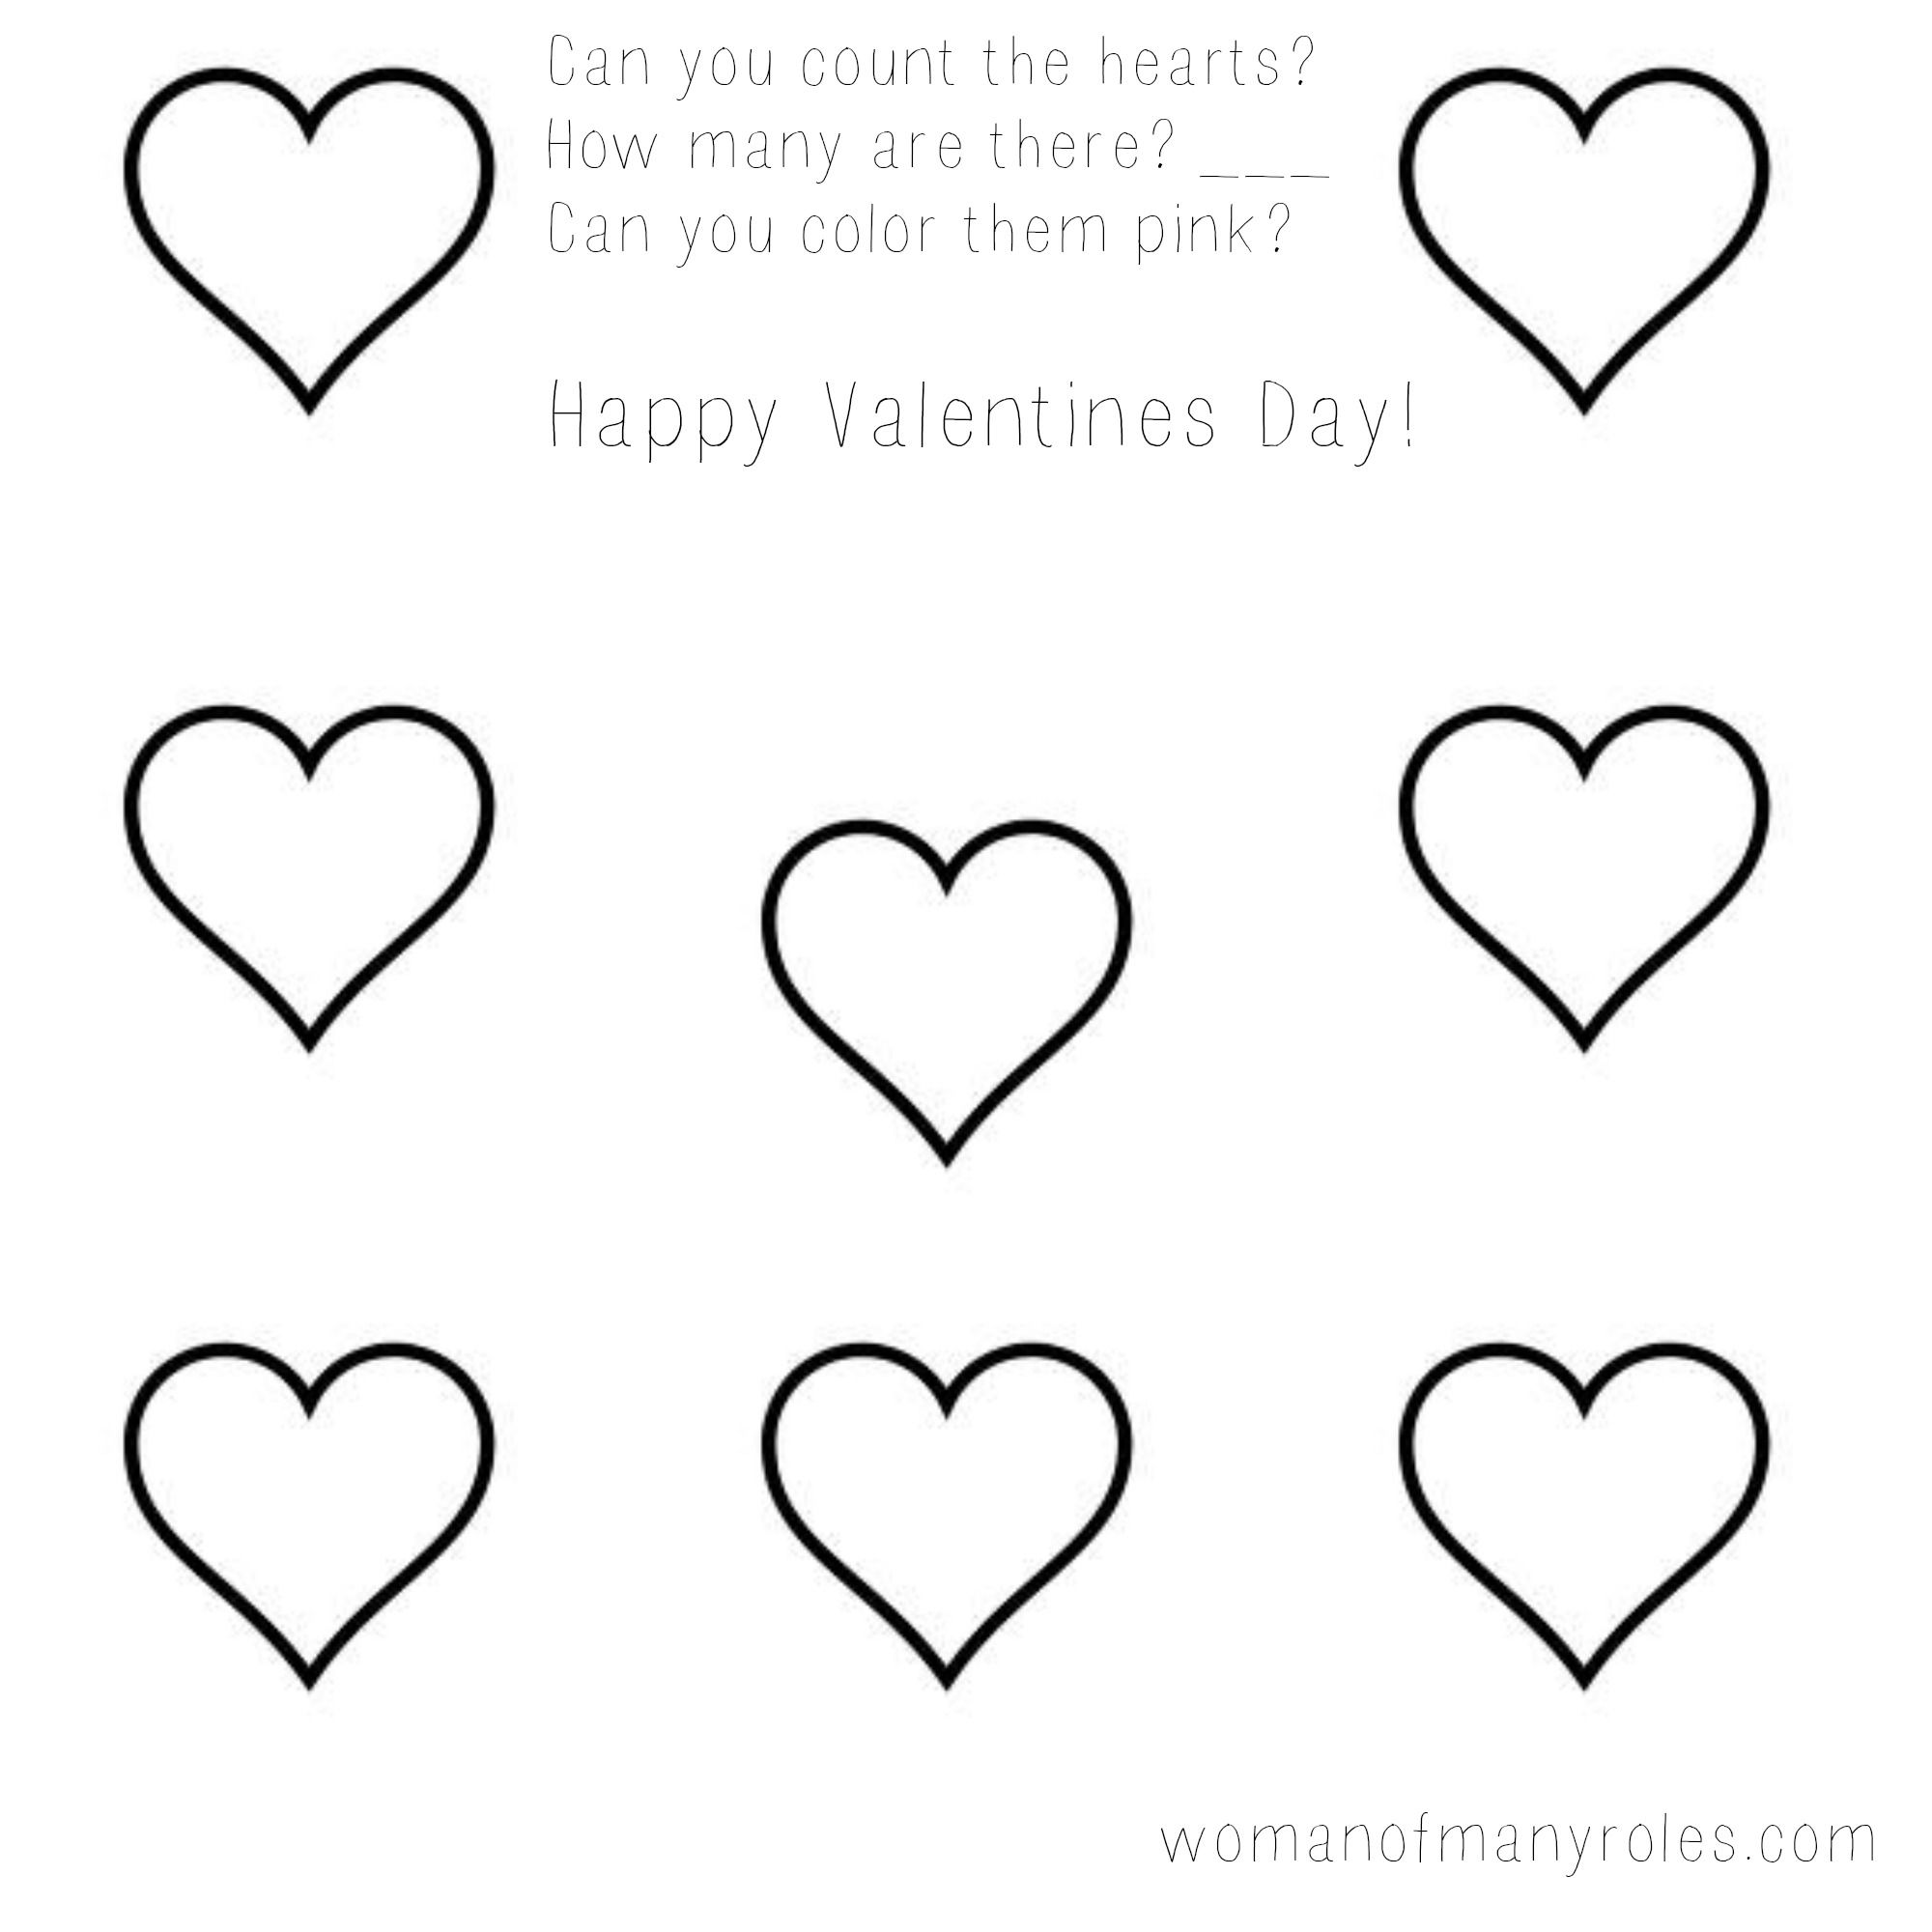 Heart Counting Printable Preschool Worksheet